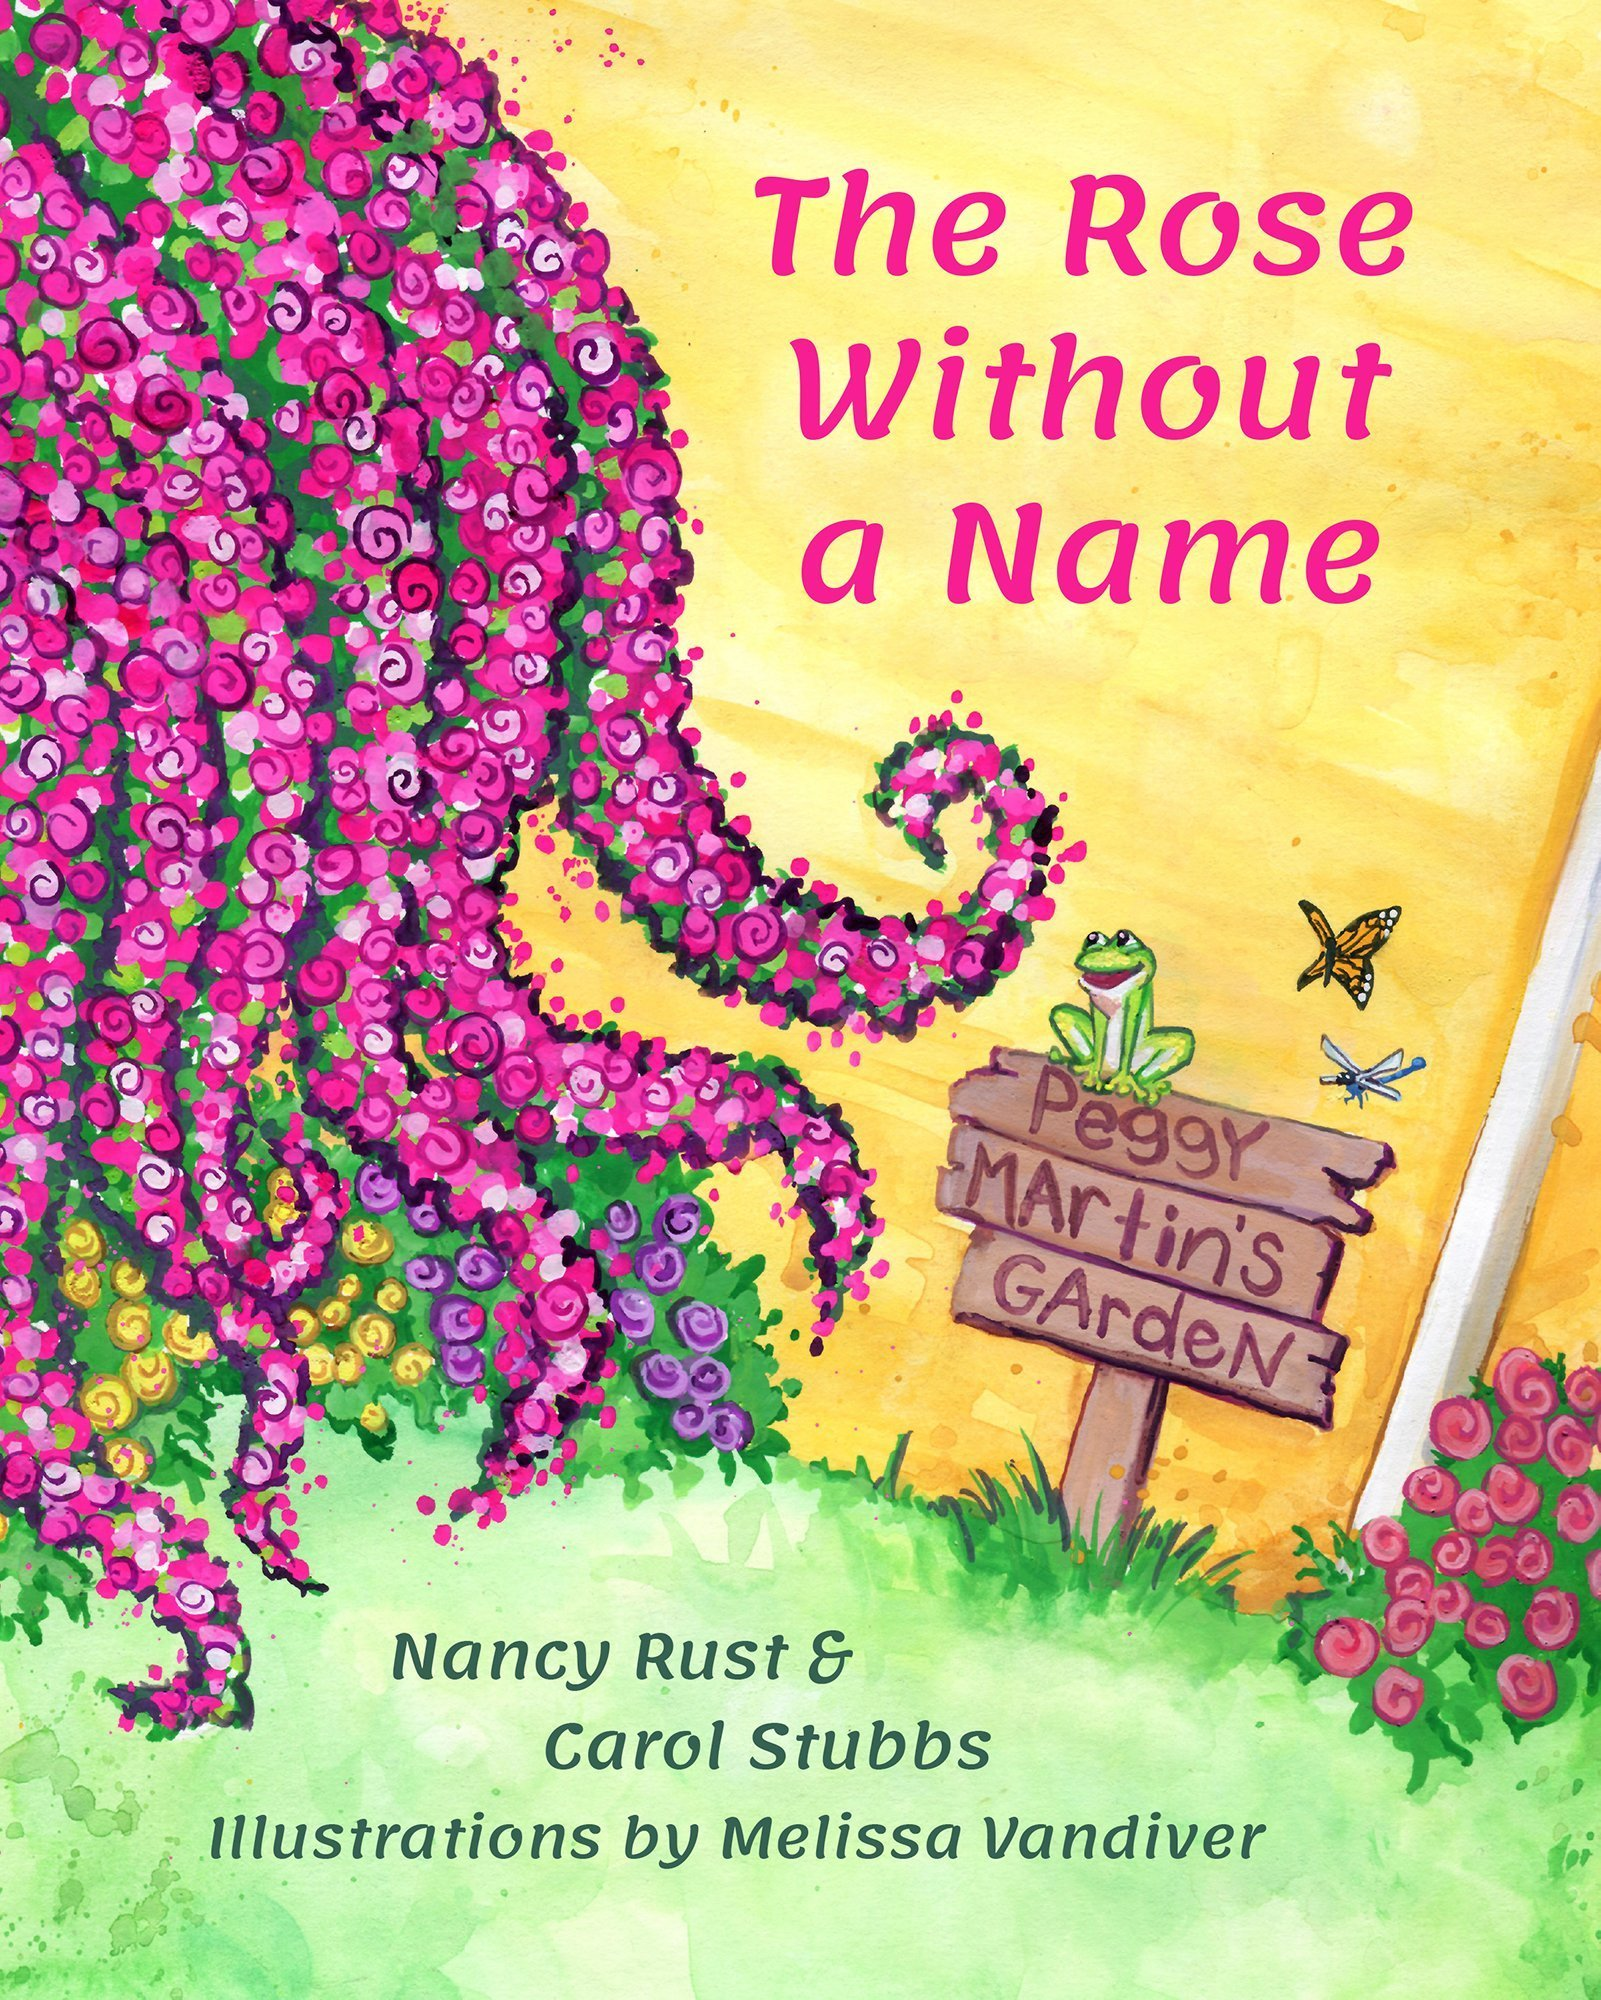 The Rose Without a Name by Nancy Rust & Carol Stubbs